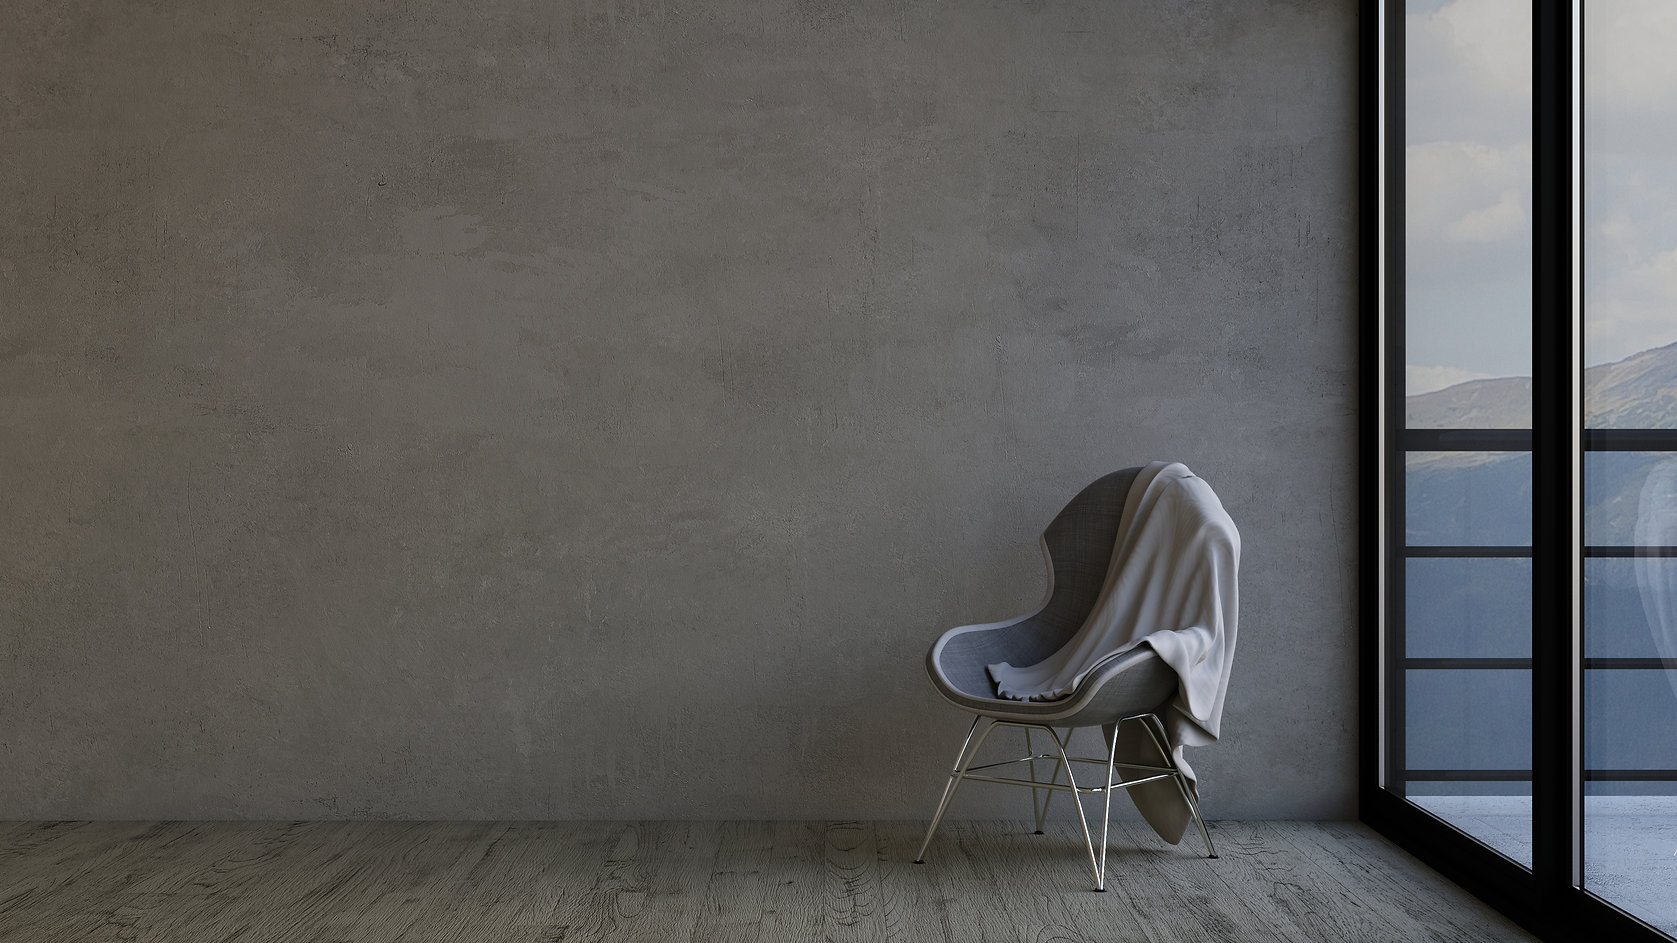 3d-contemporary-empty-room-chair.jpg